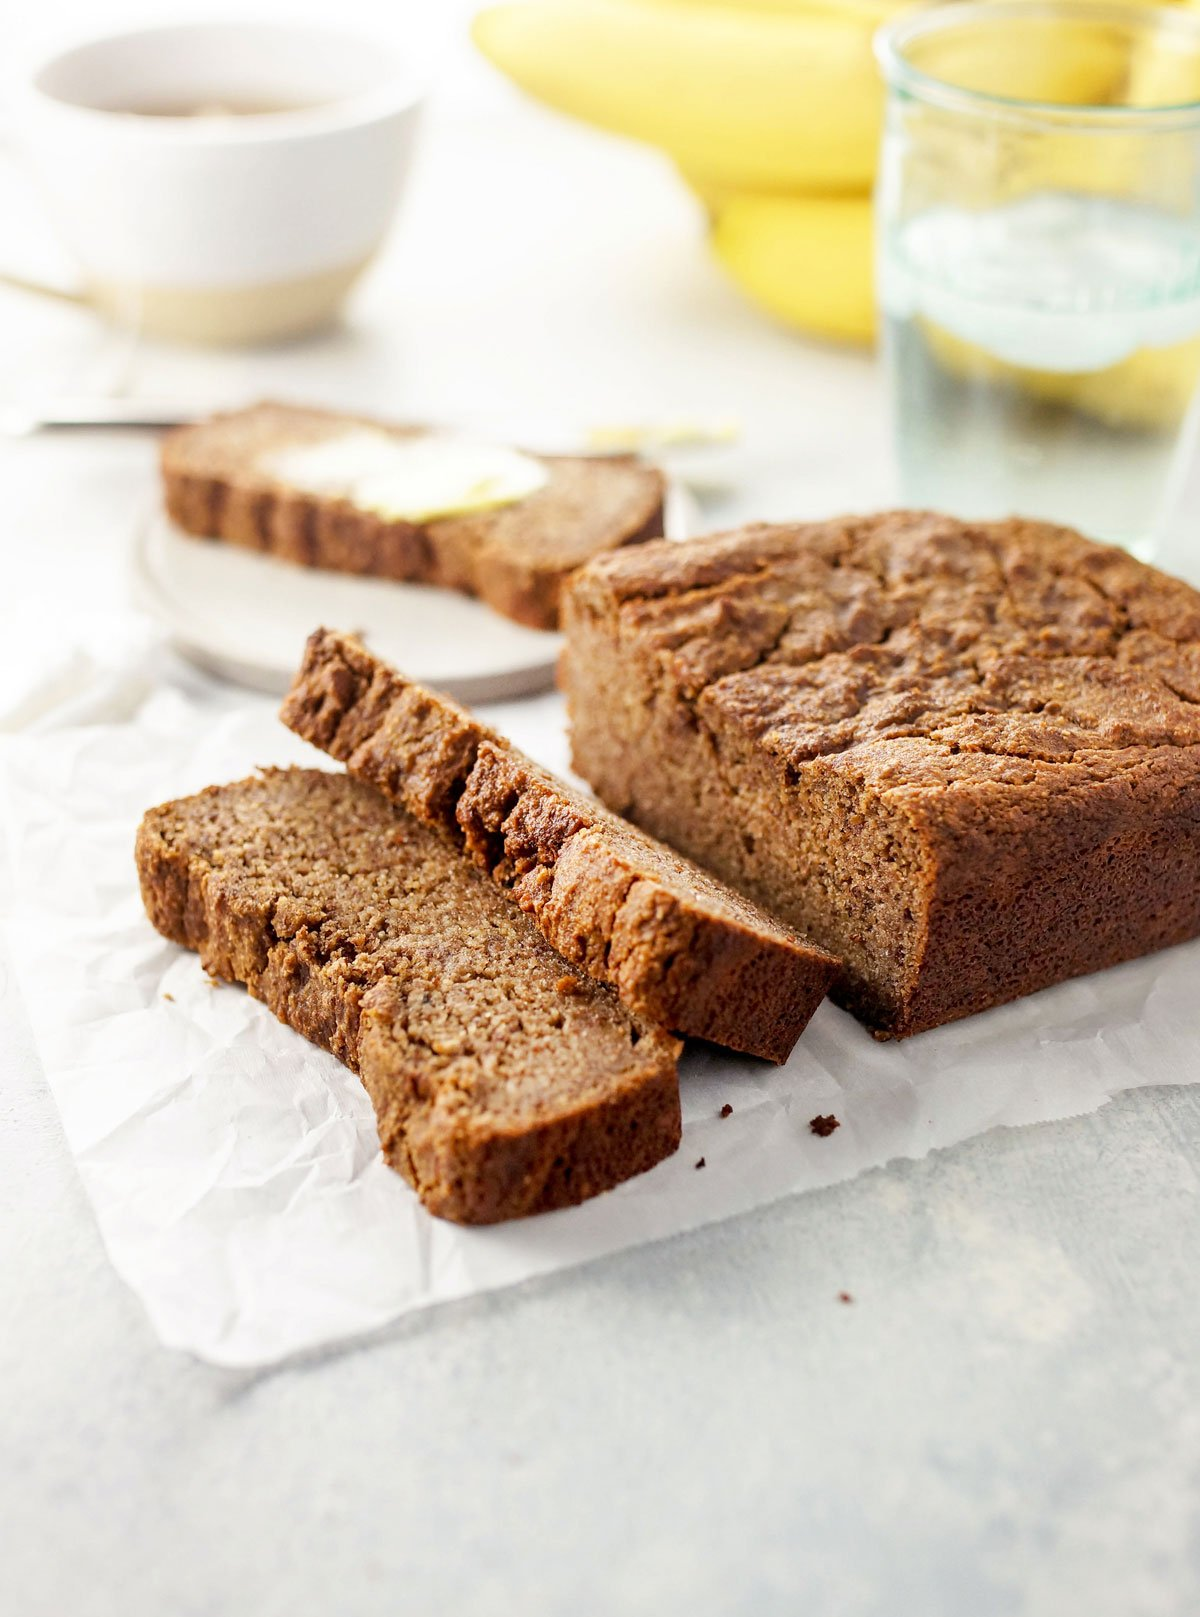 slices of almond flour banana bread from a loaf